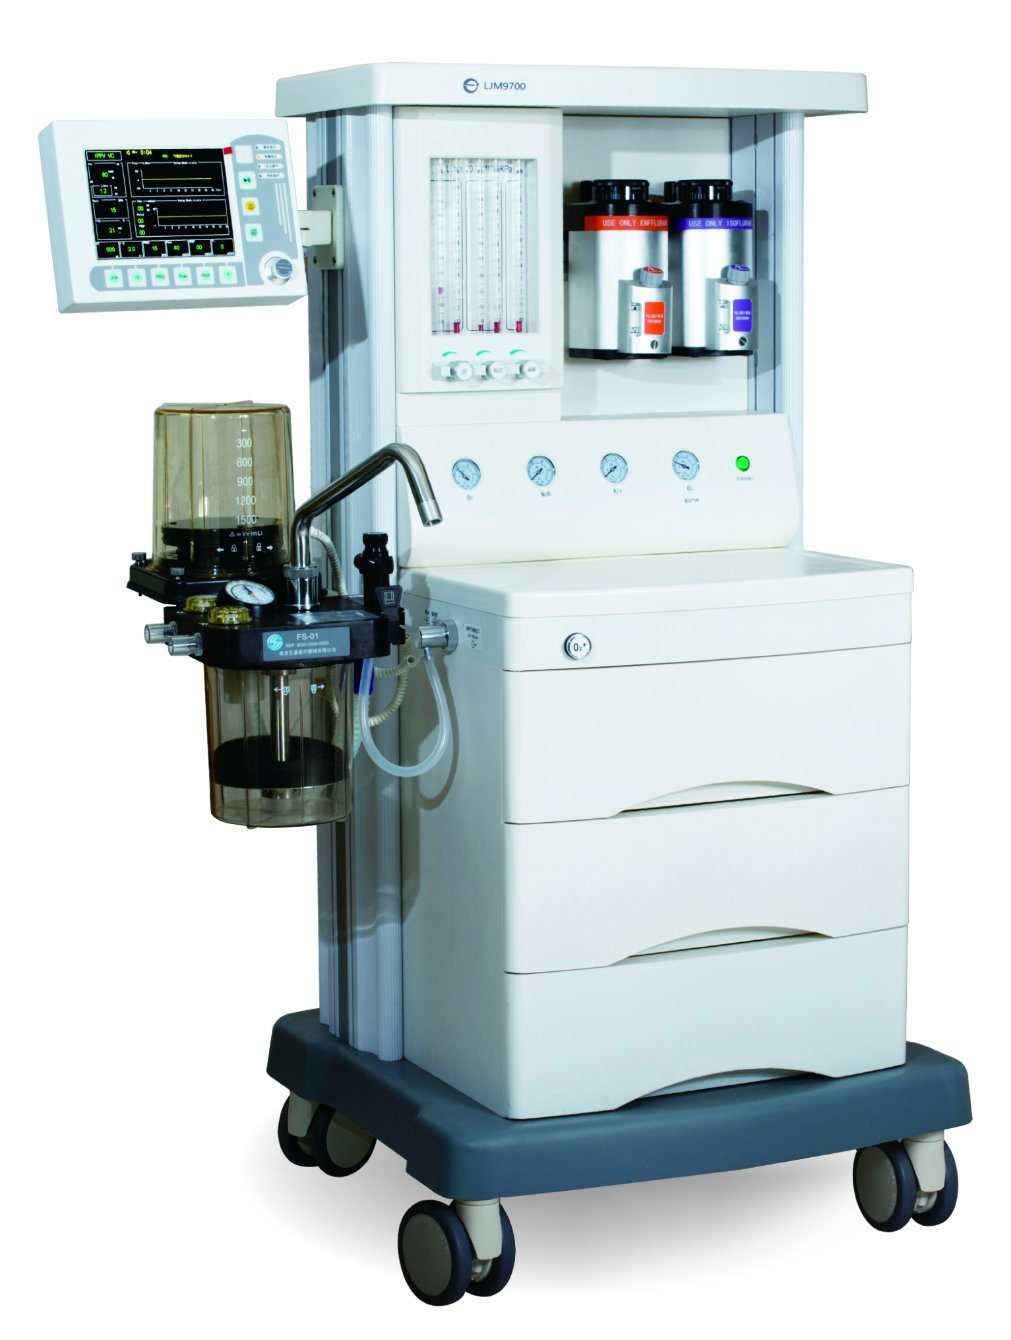 Advanced Medical Anaesthesia/Anesthesia Machine Ljm9700 with Ce Certificate